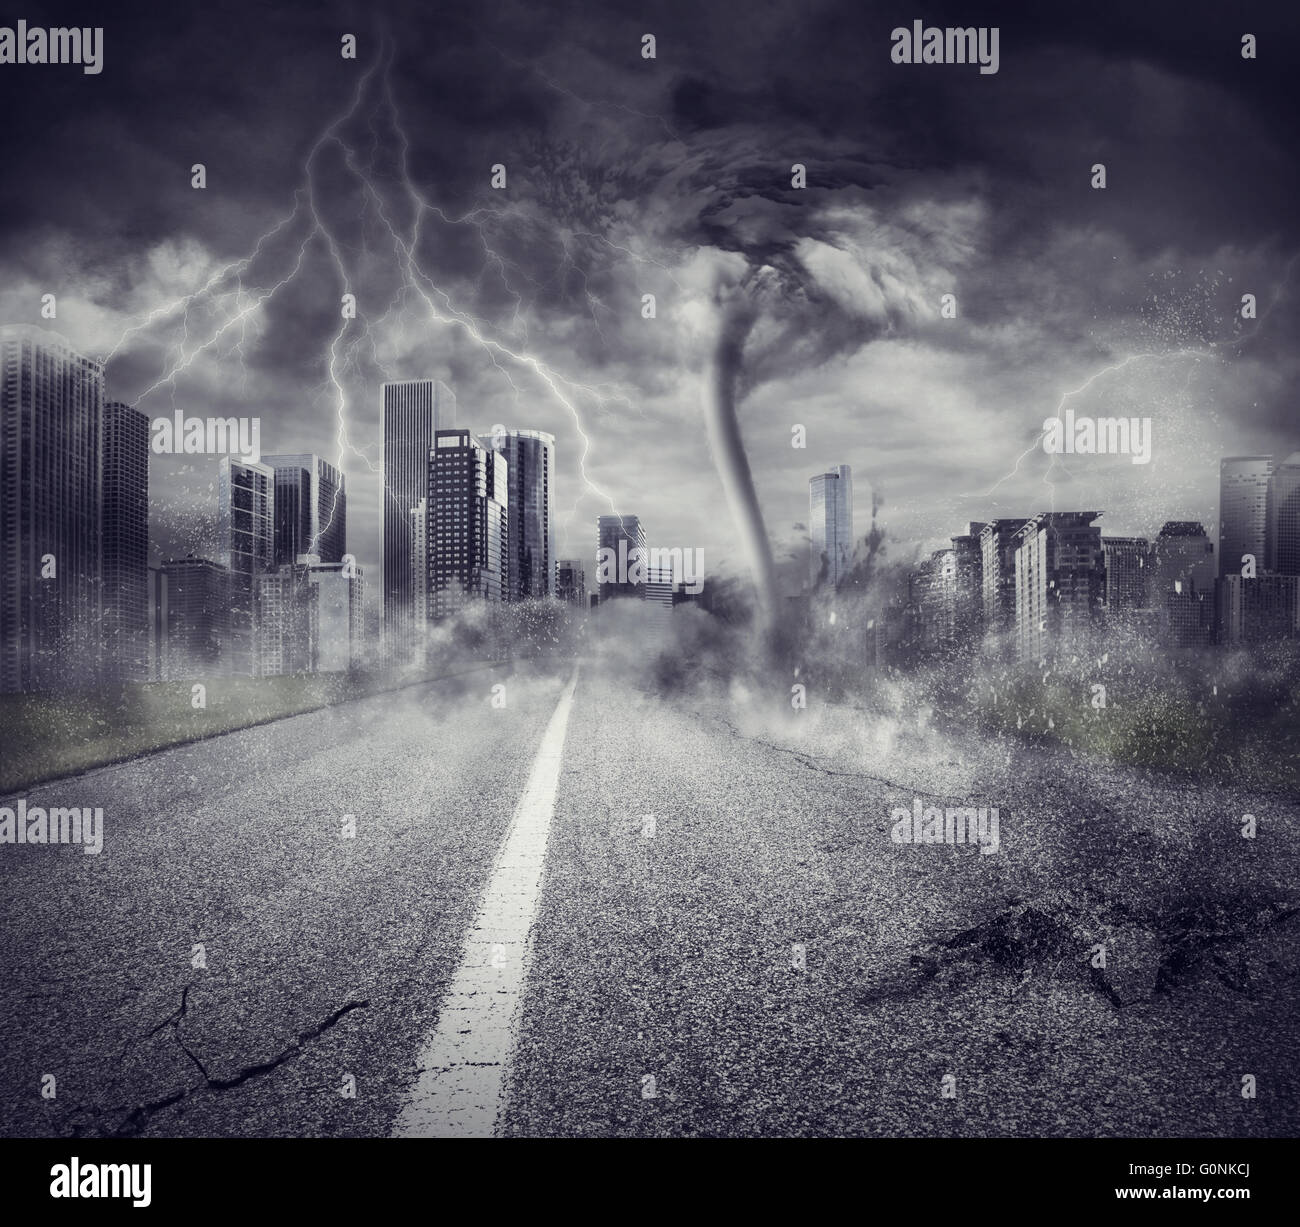 Recession concept with storm in a city - Stock Image